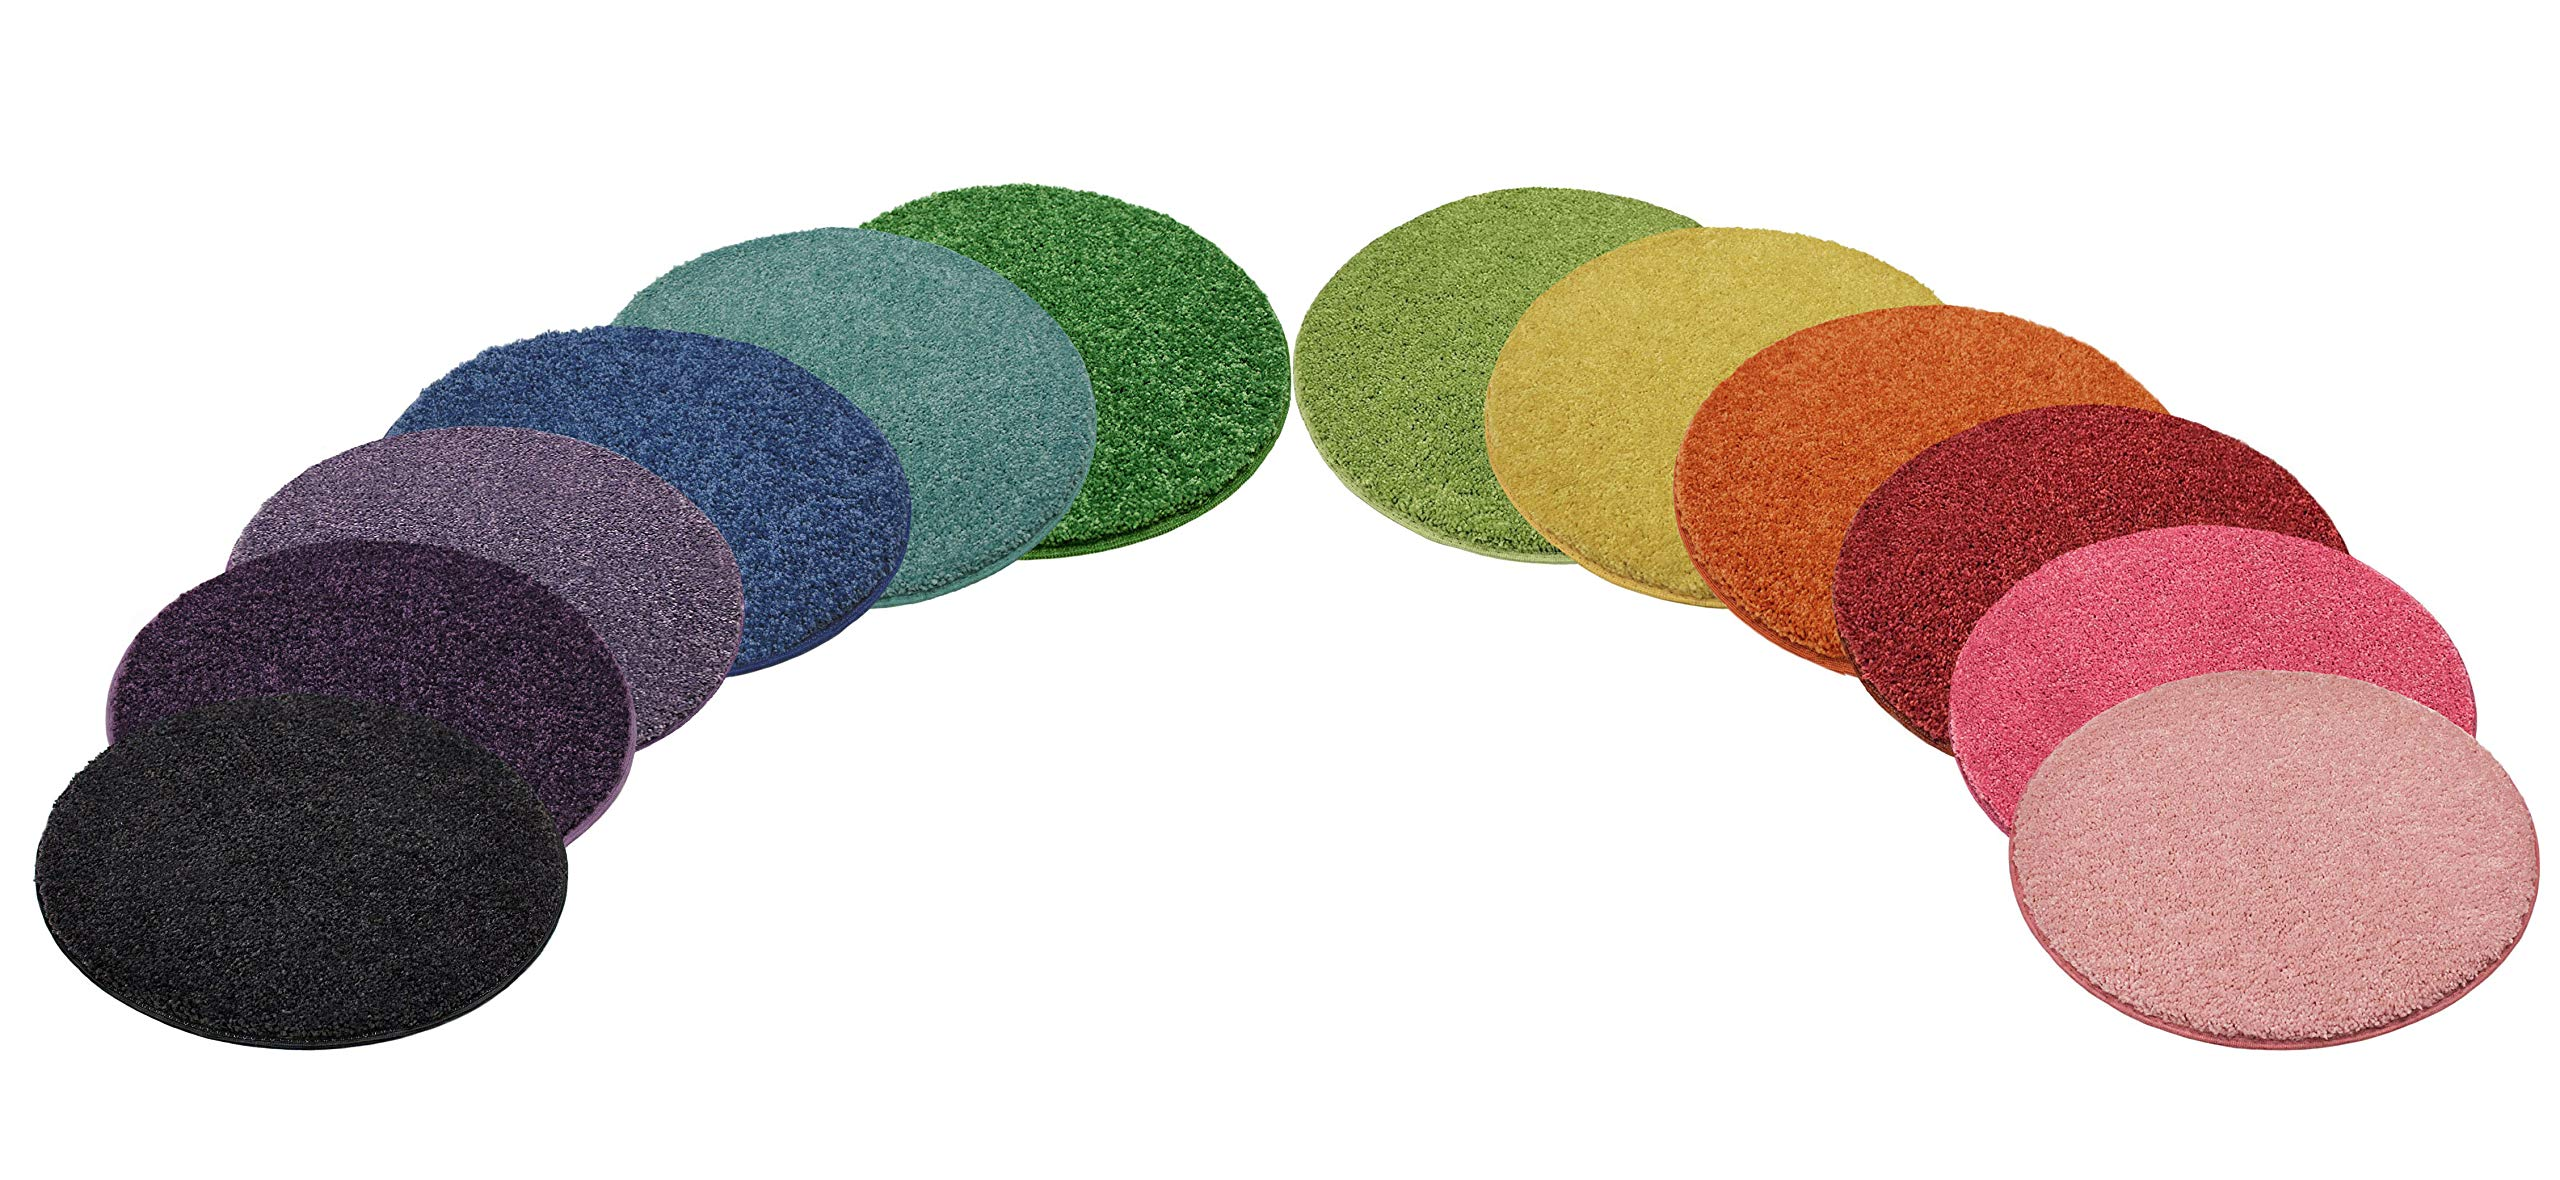 """12 Rainbow Kids Crazy Carpet Circle Seats 18"""" Round Soft Warm Floor Mat - Cushions   Classroom, Story Time, Group Activity, Time-Out Spot Marker and Fun. Home Bedroom & Play Areas - USA Made"""